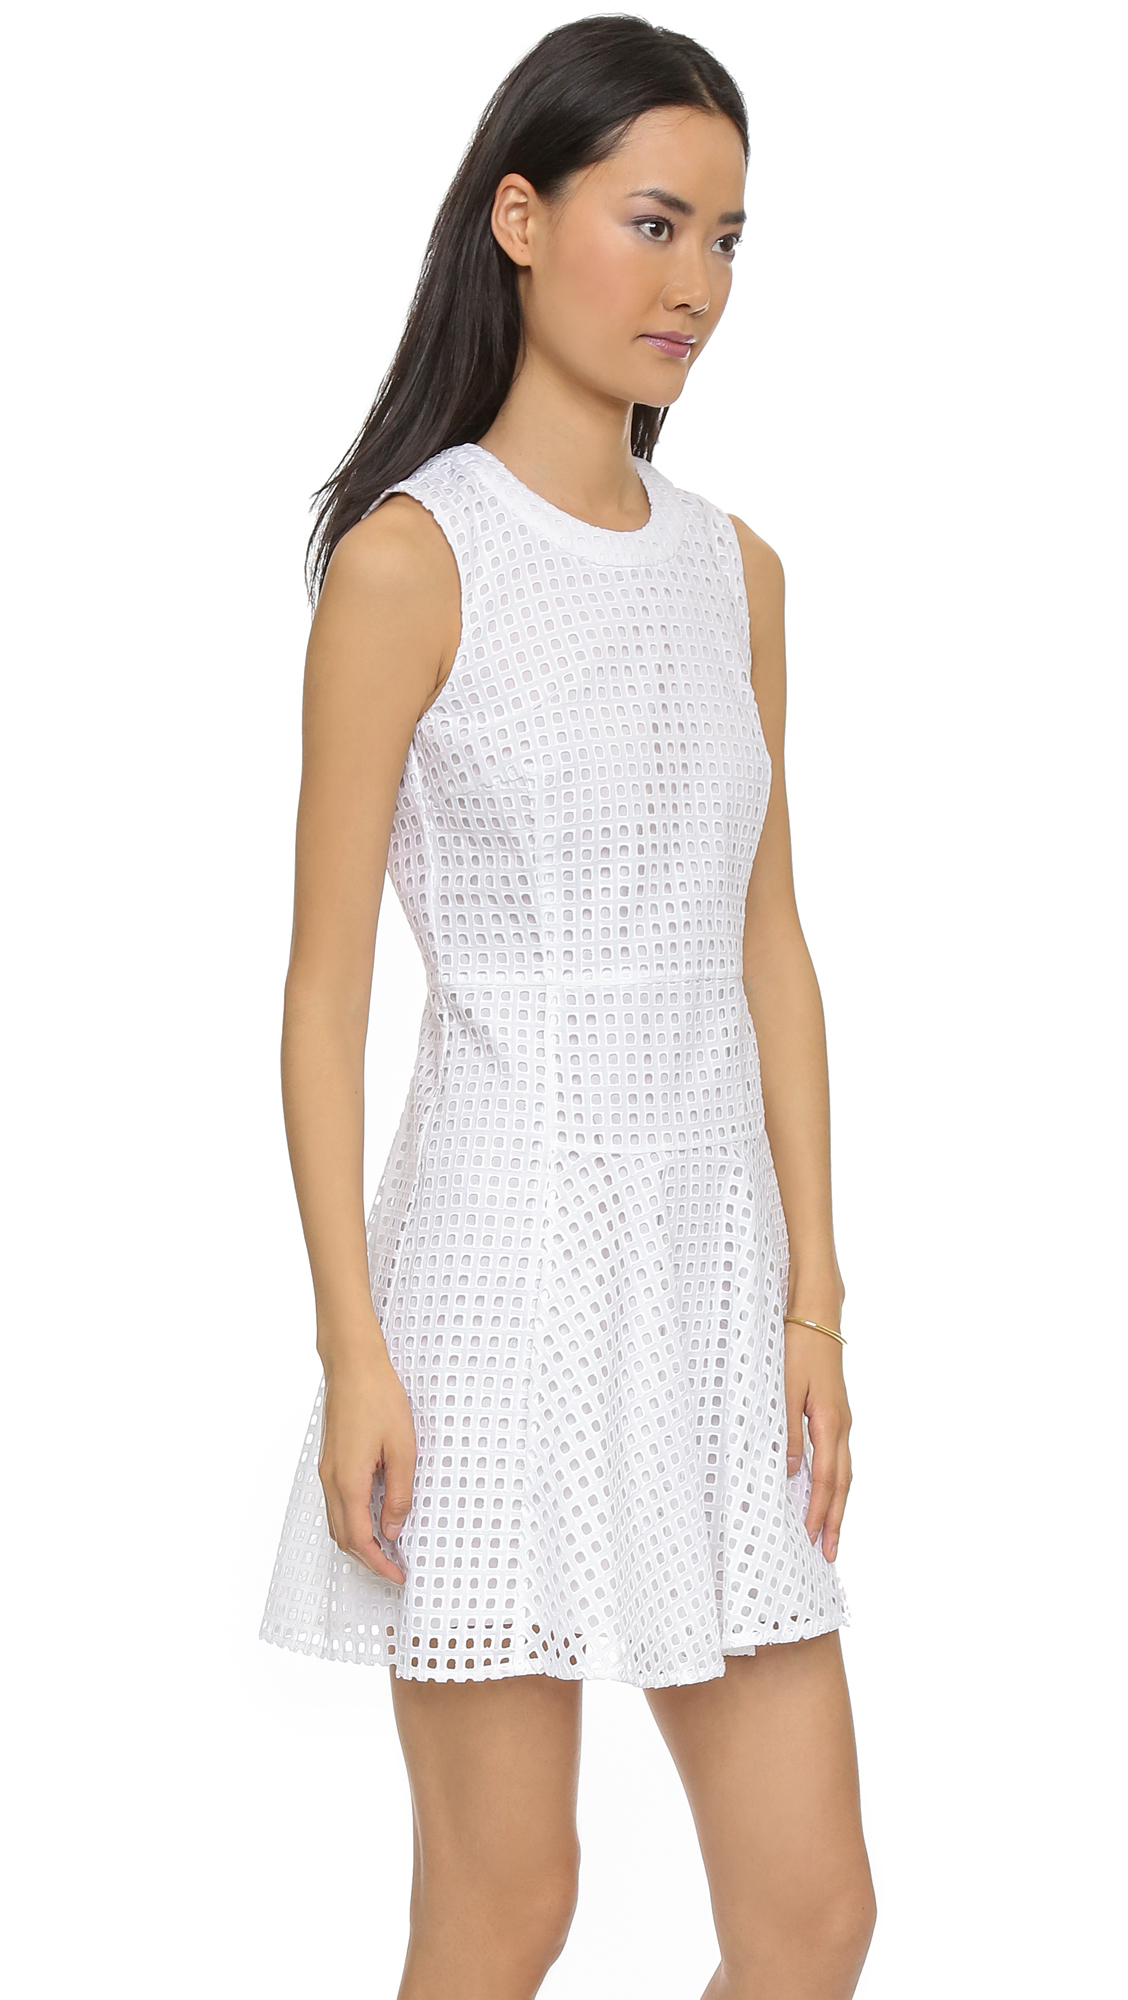 314e23fd99 Gallery. Previously sold at  Shopbop · Women s White Dresses ...